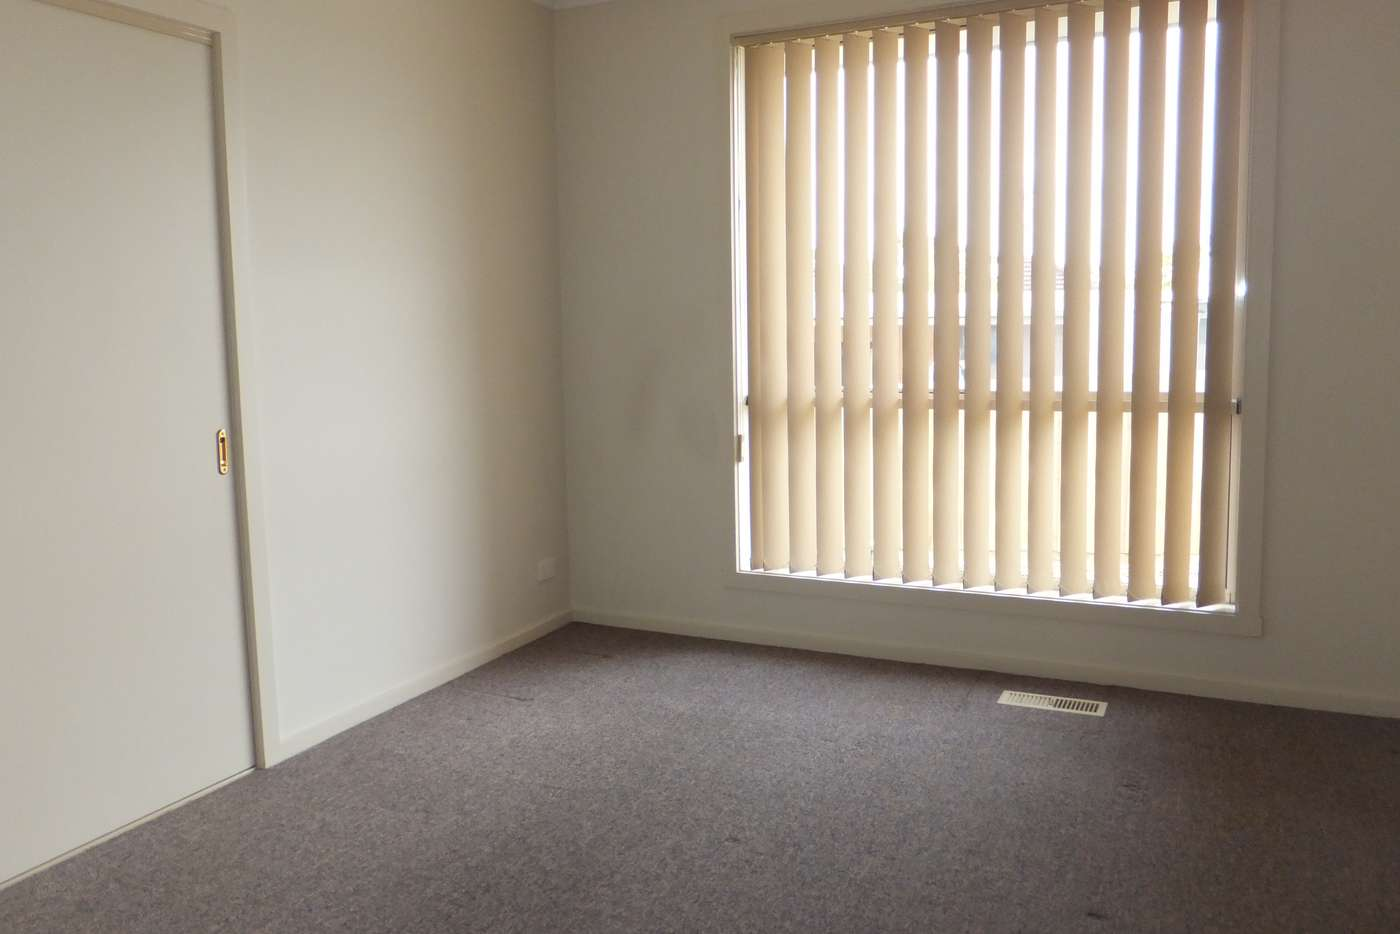 Sixth view of Homely unit listing, 2/145 Ferntree Gully Road, Mount Waverley VIC 3149